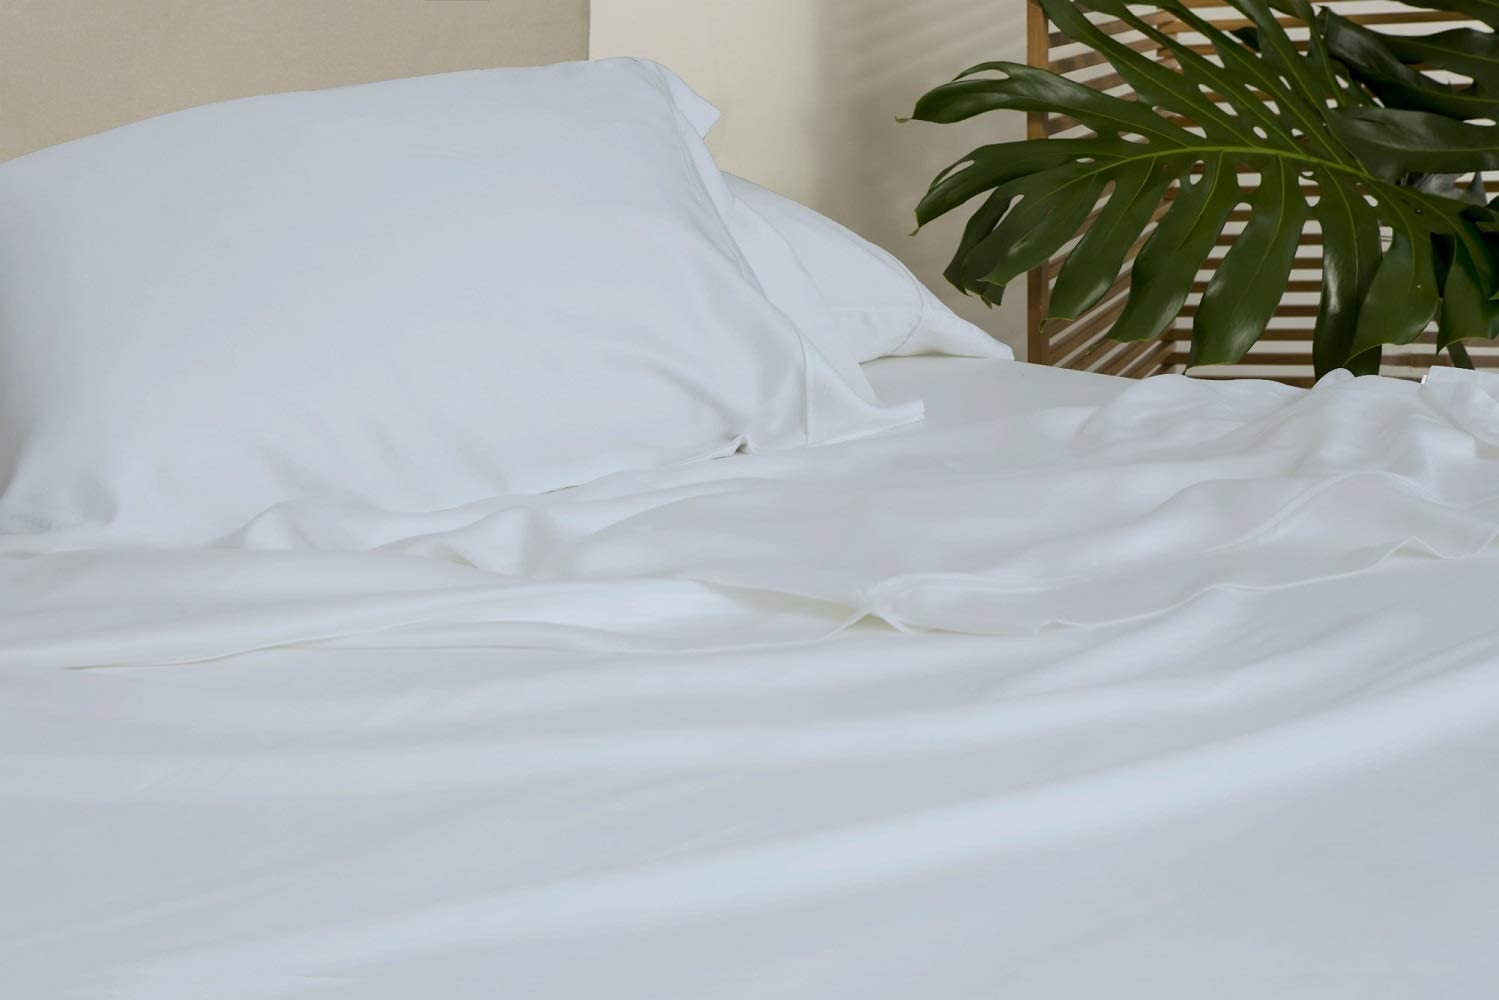 SHEEX Arctic Aire Max Sheet Set 2 Raleigh Mall Department store with Tencel Pillowcases 100%